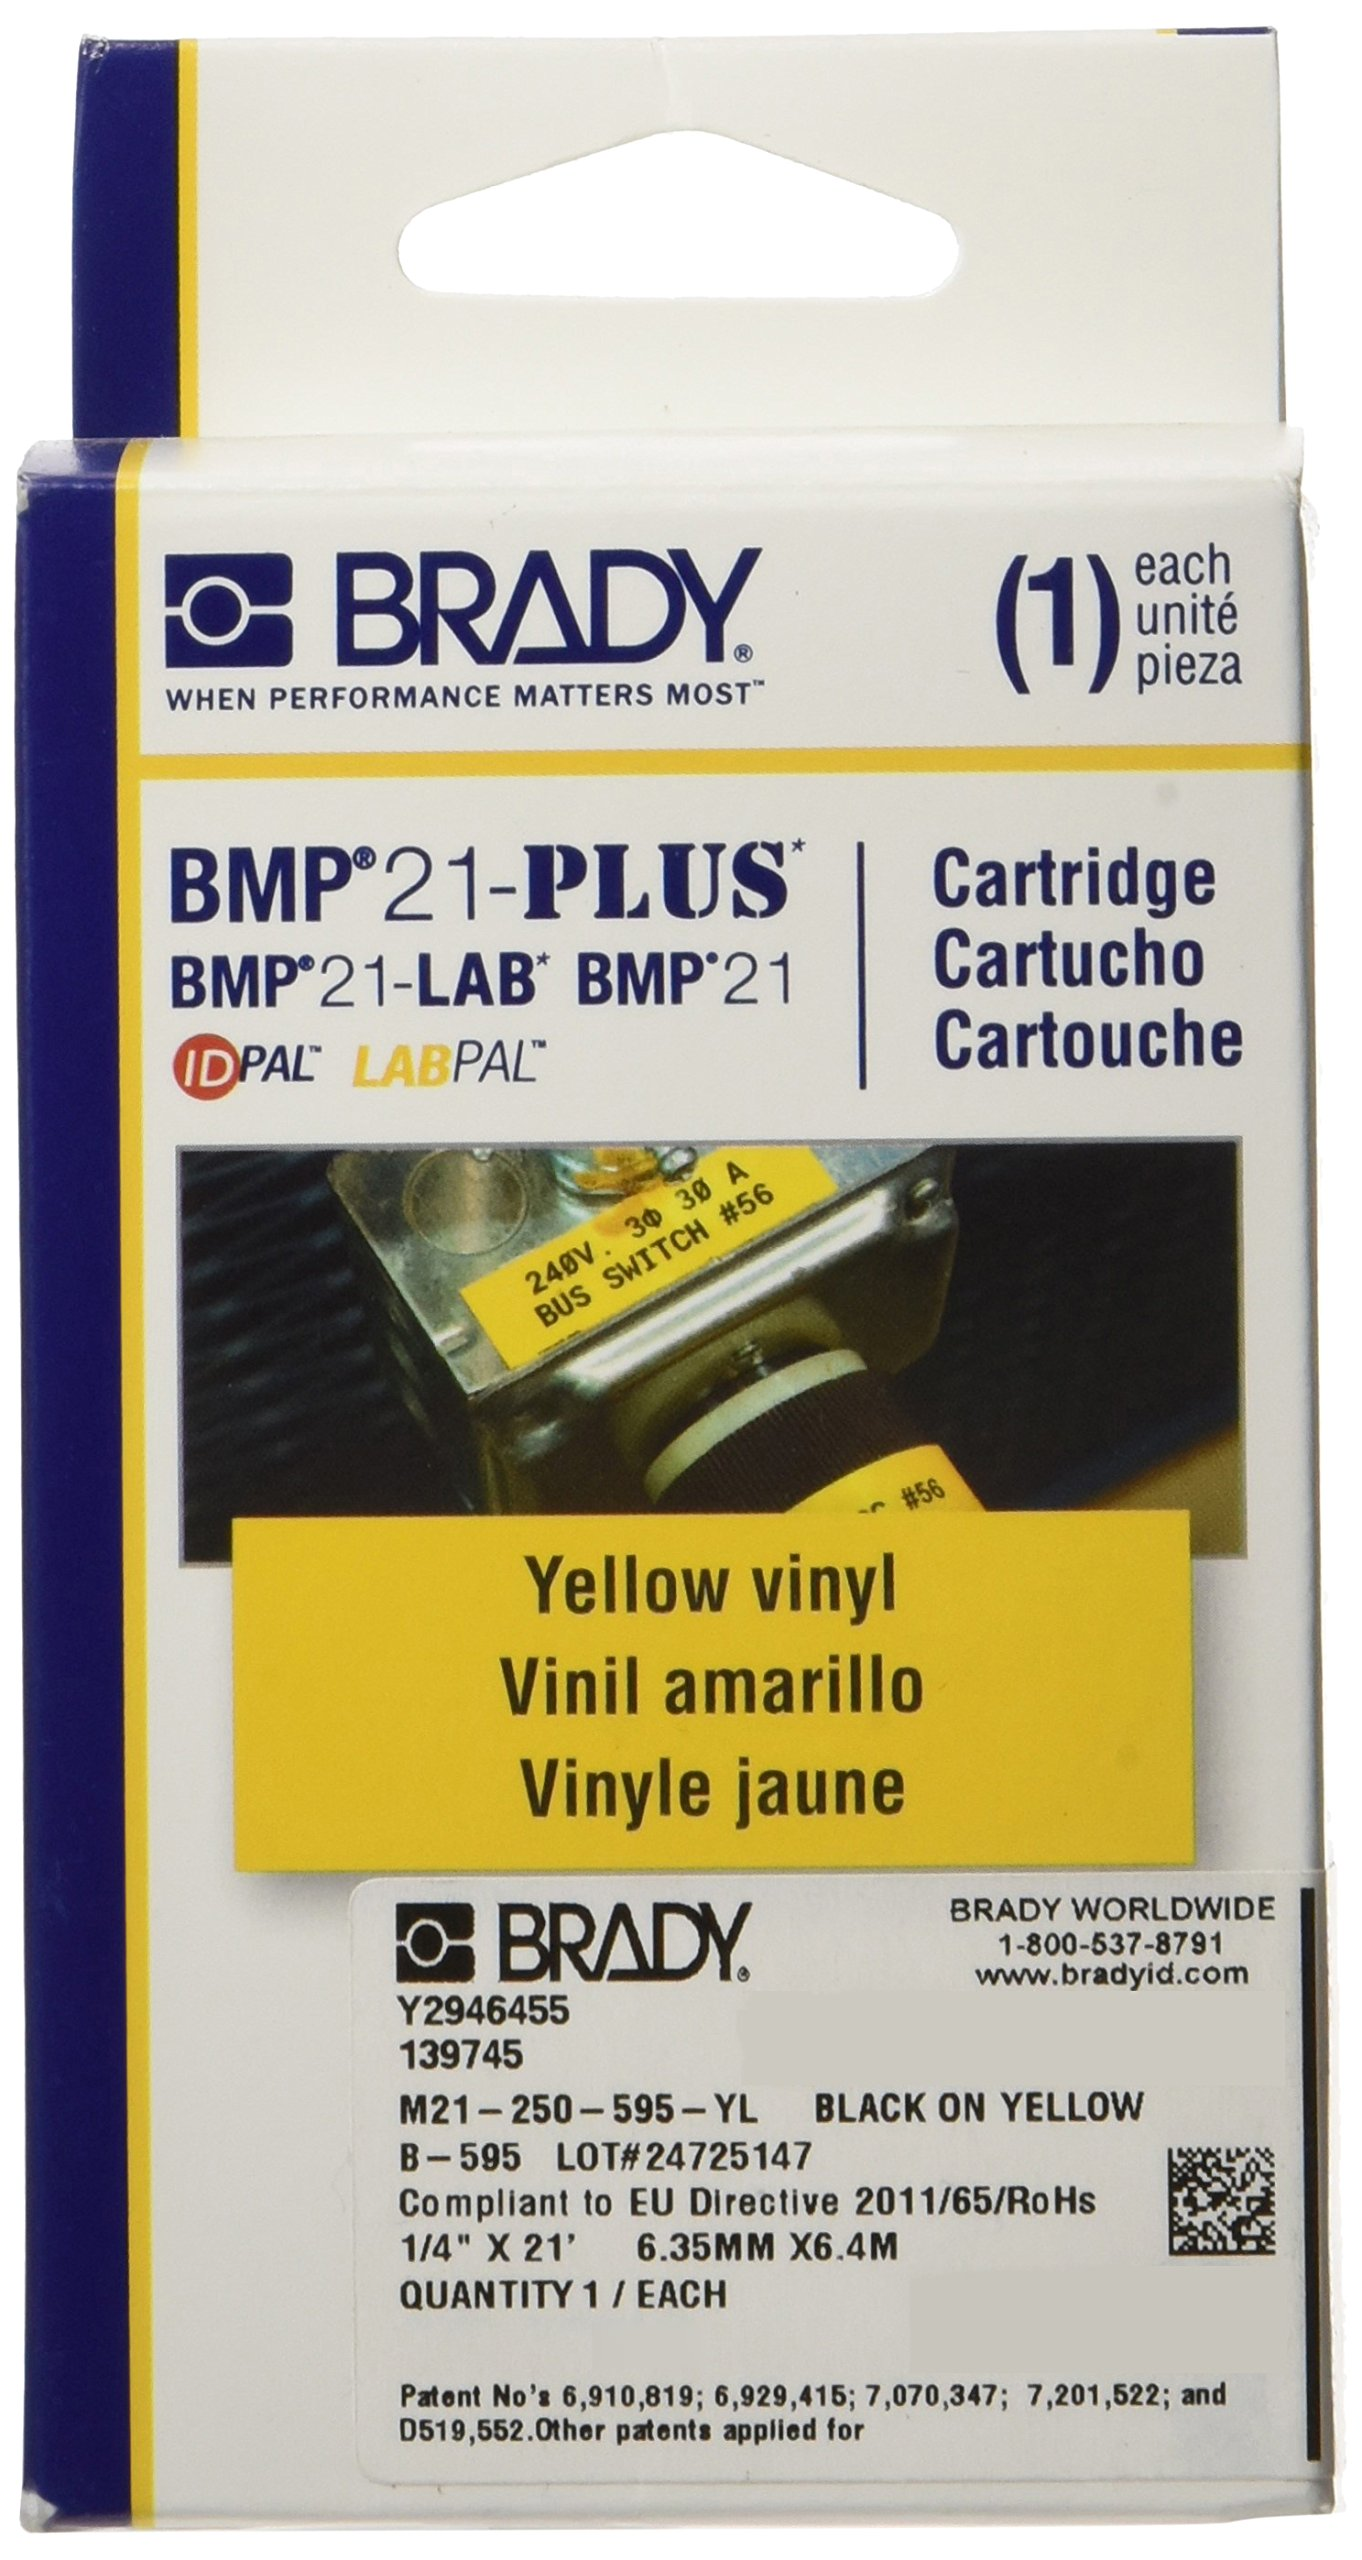 Brady M21-250-595-YL Cartridge, B595 Vinyl Indoor/Outdoor Material, 0.25'' W x 21' L, Black on Yellow